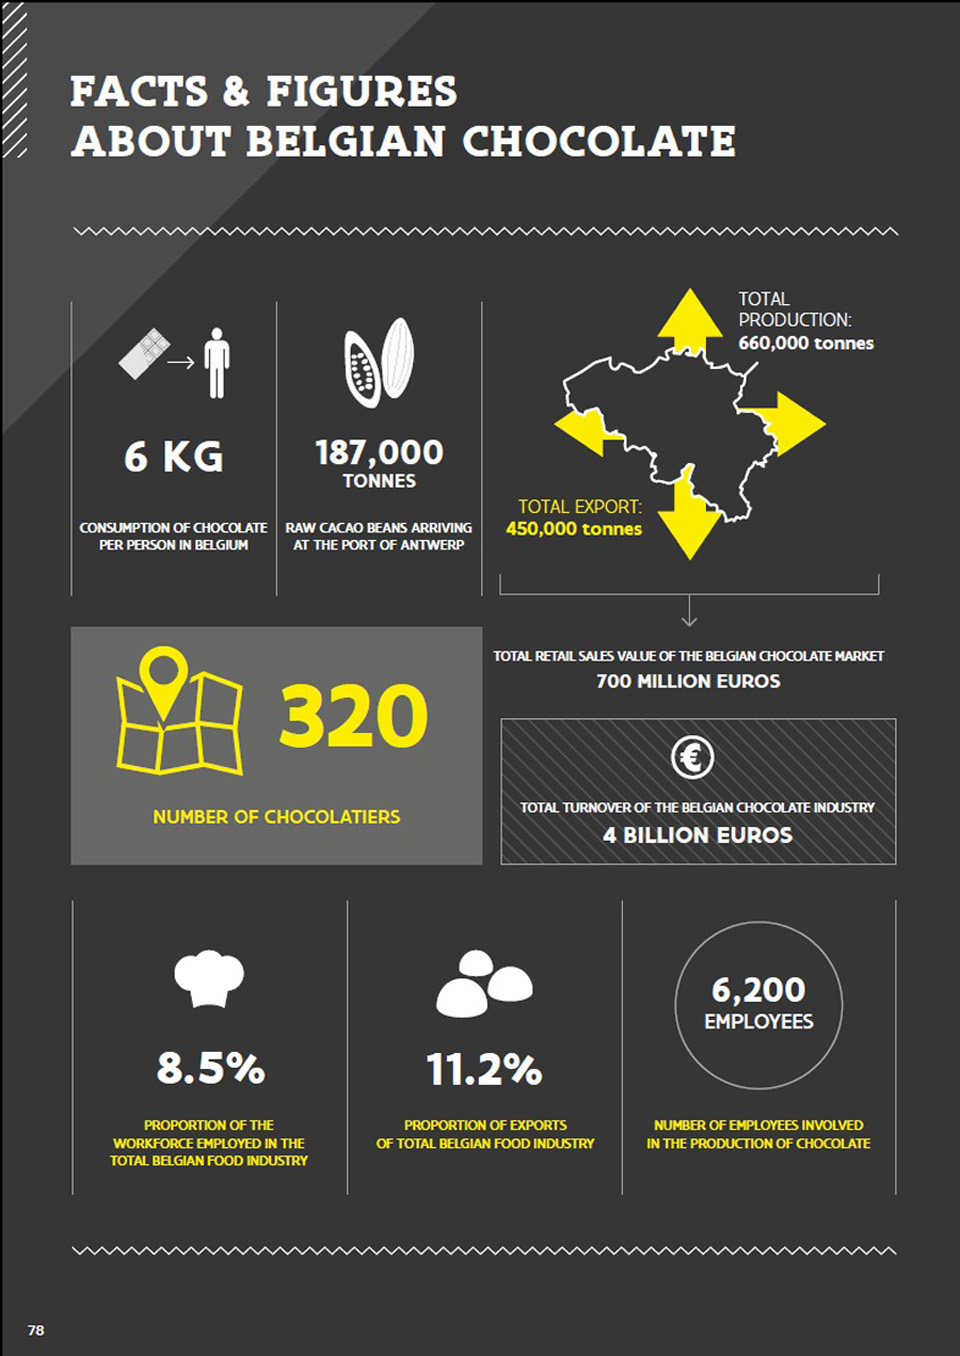 Facts & figures about Belgian Chocolate